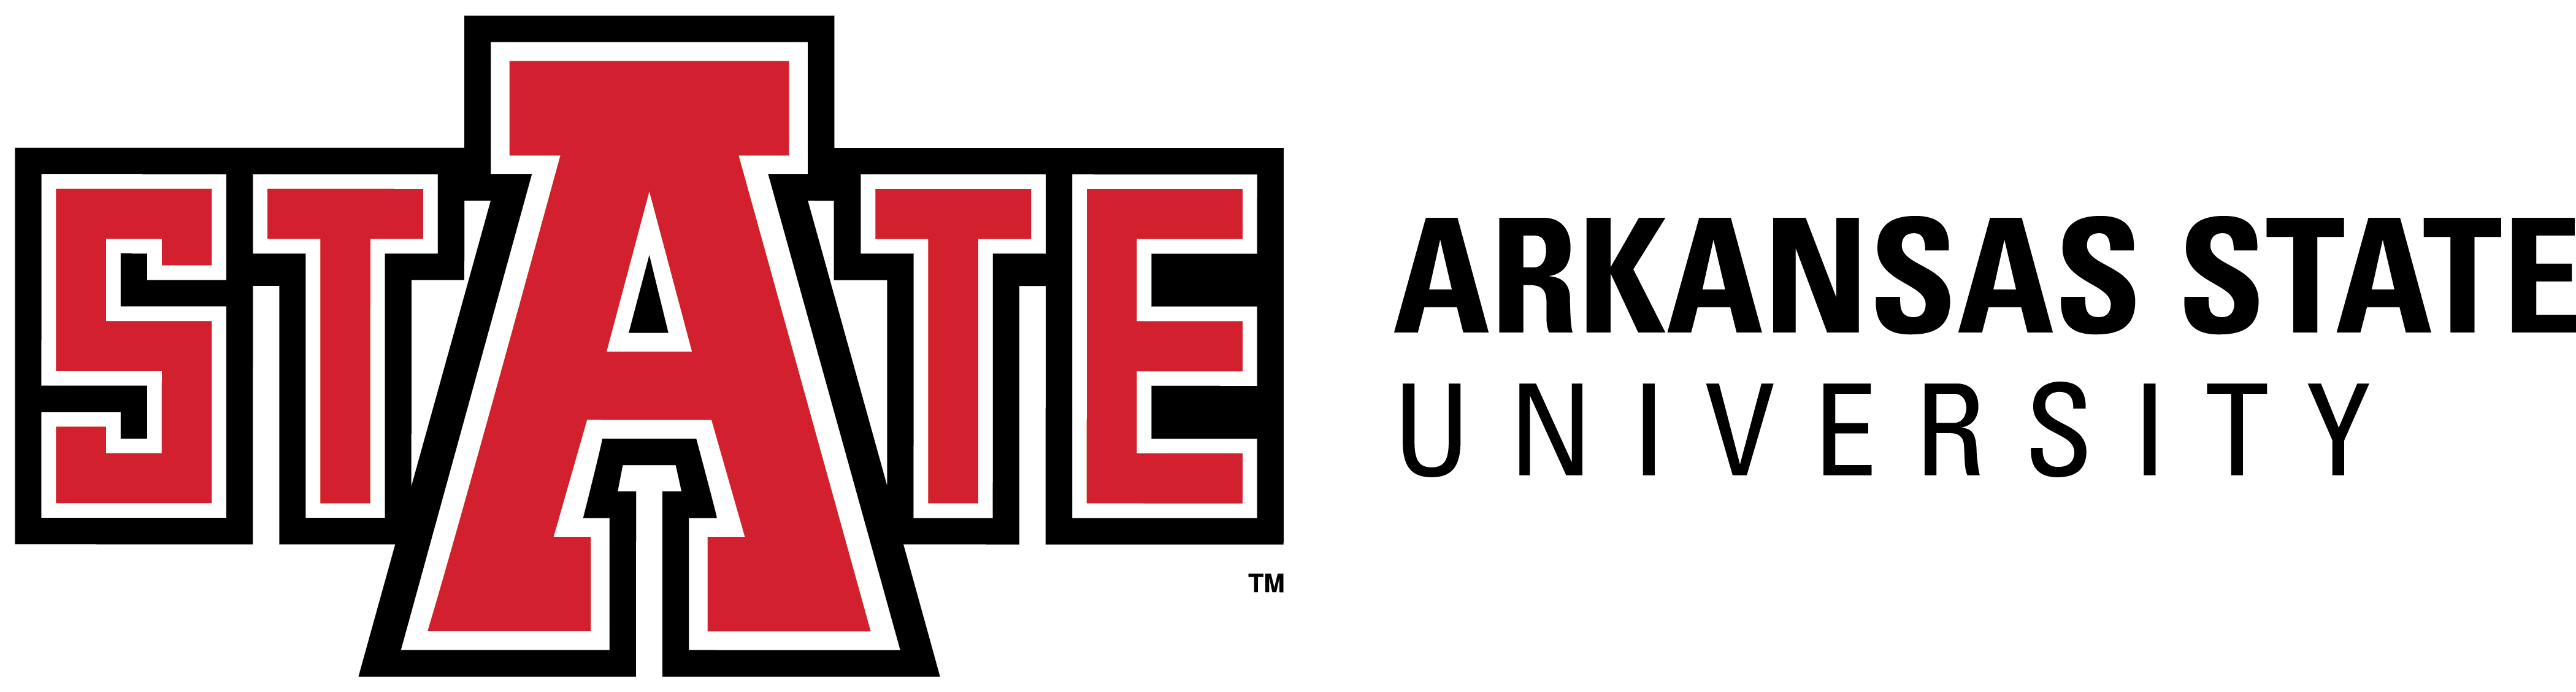 ASTATE UnivLogo_Horiz_2C_Light